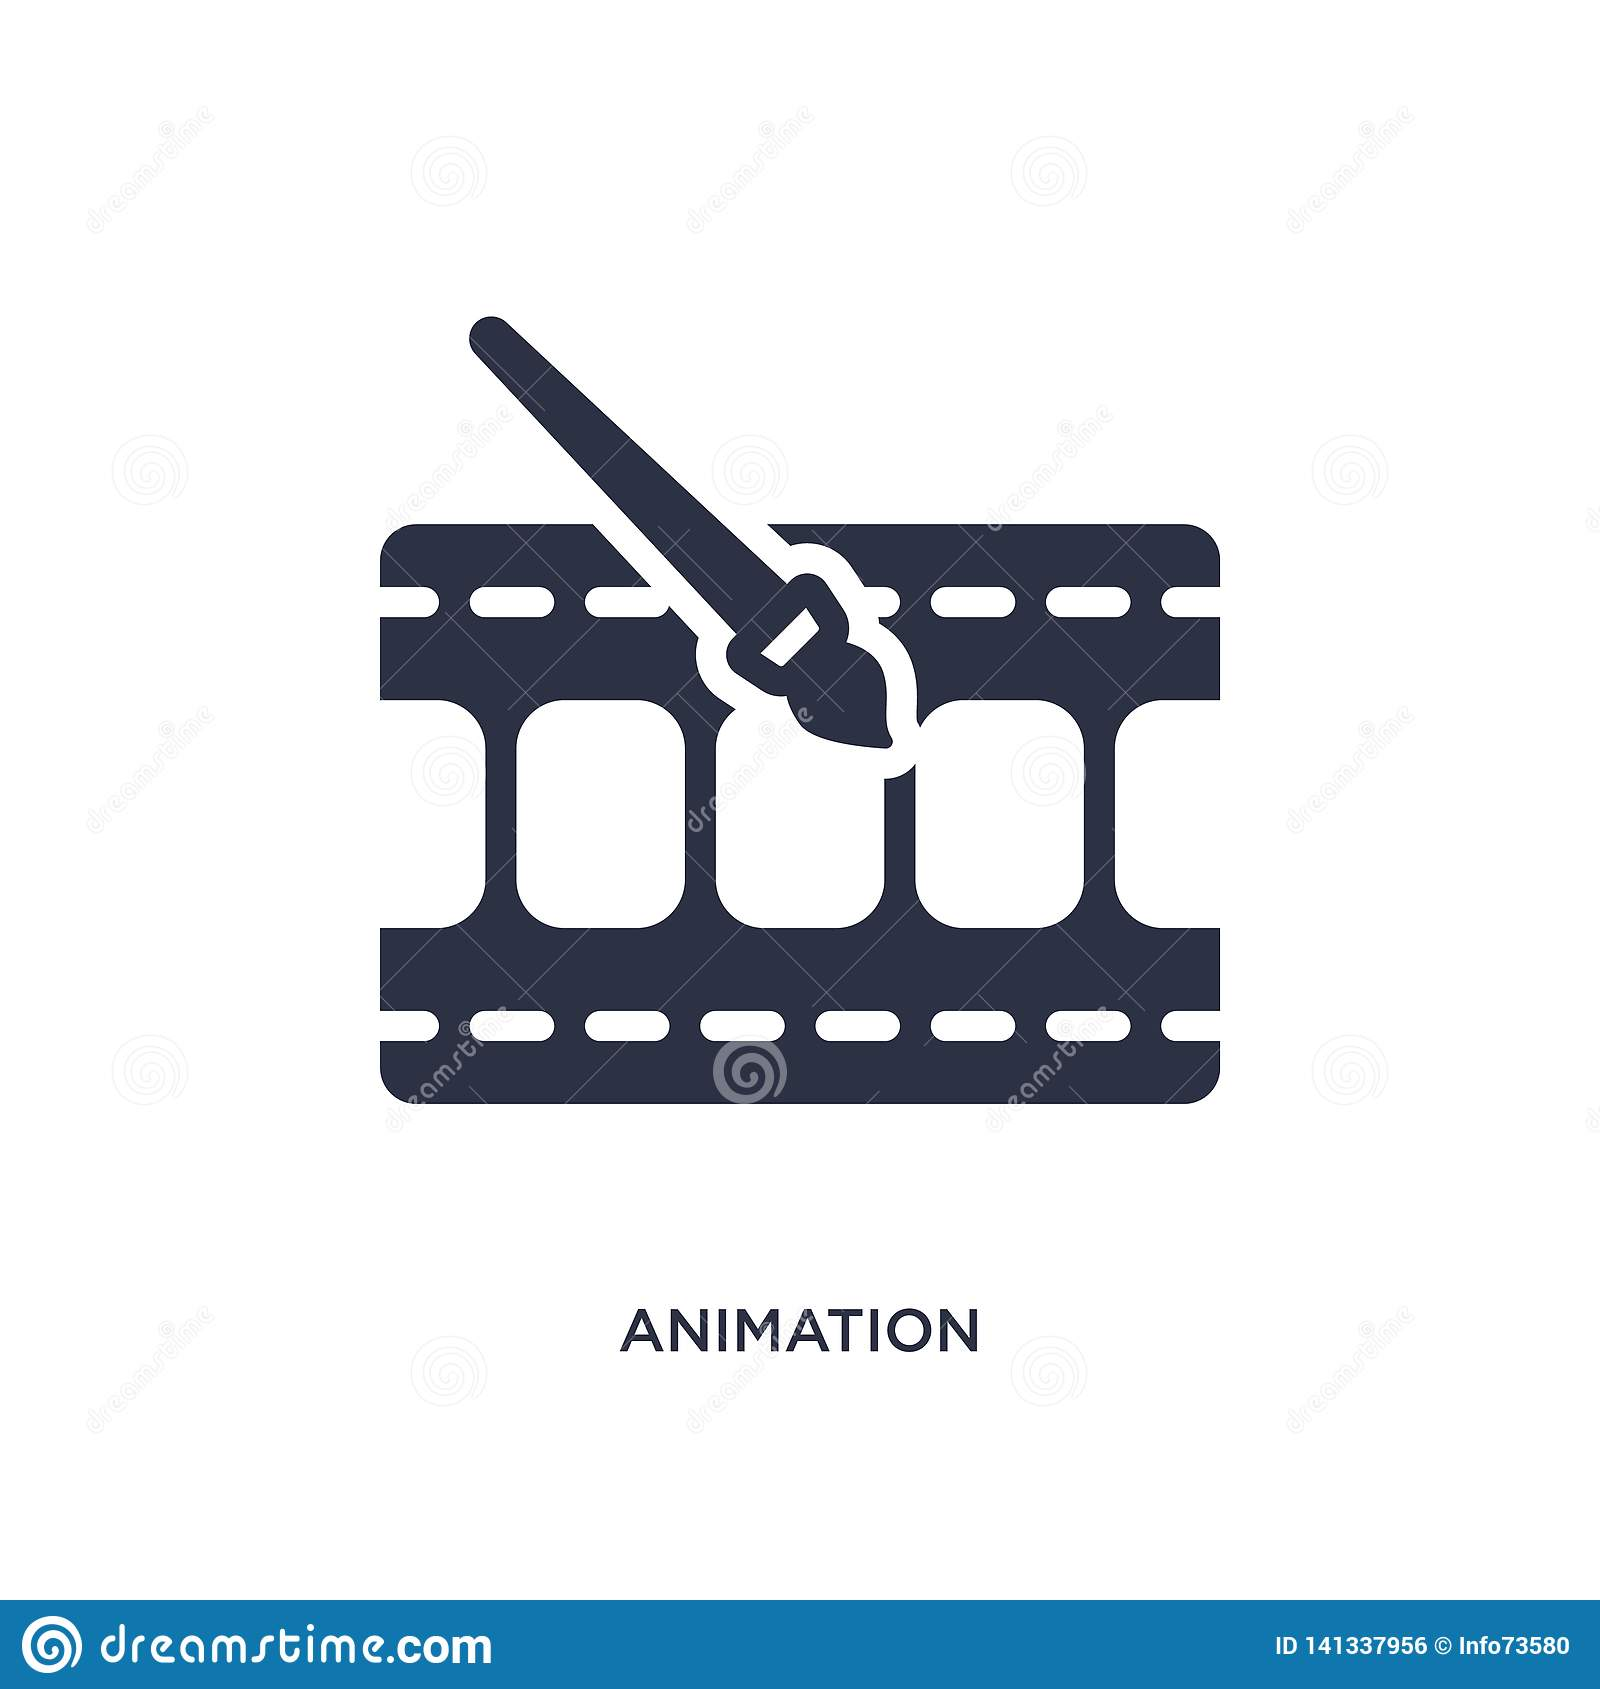 animation icon on white background. Simple element illustration from cinema concept